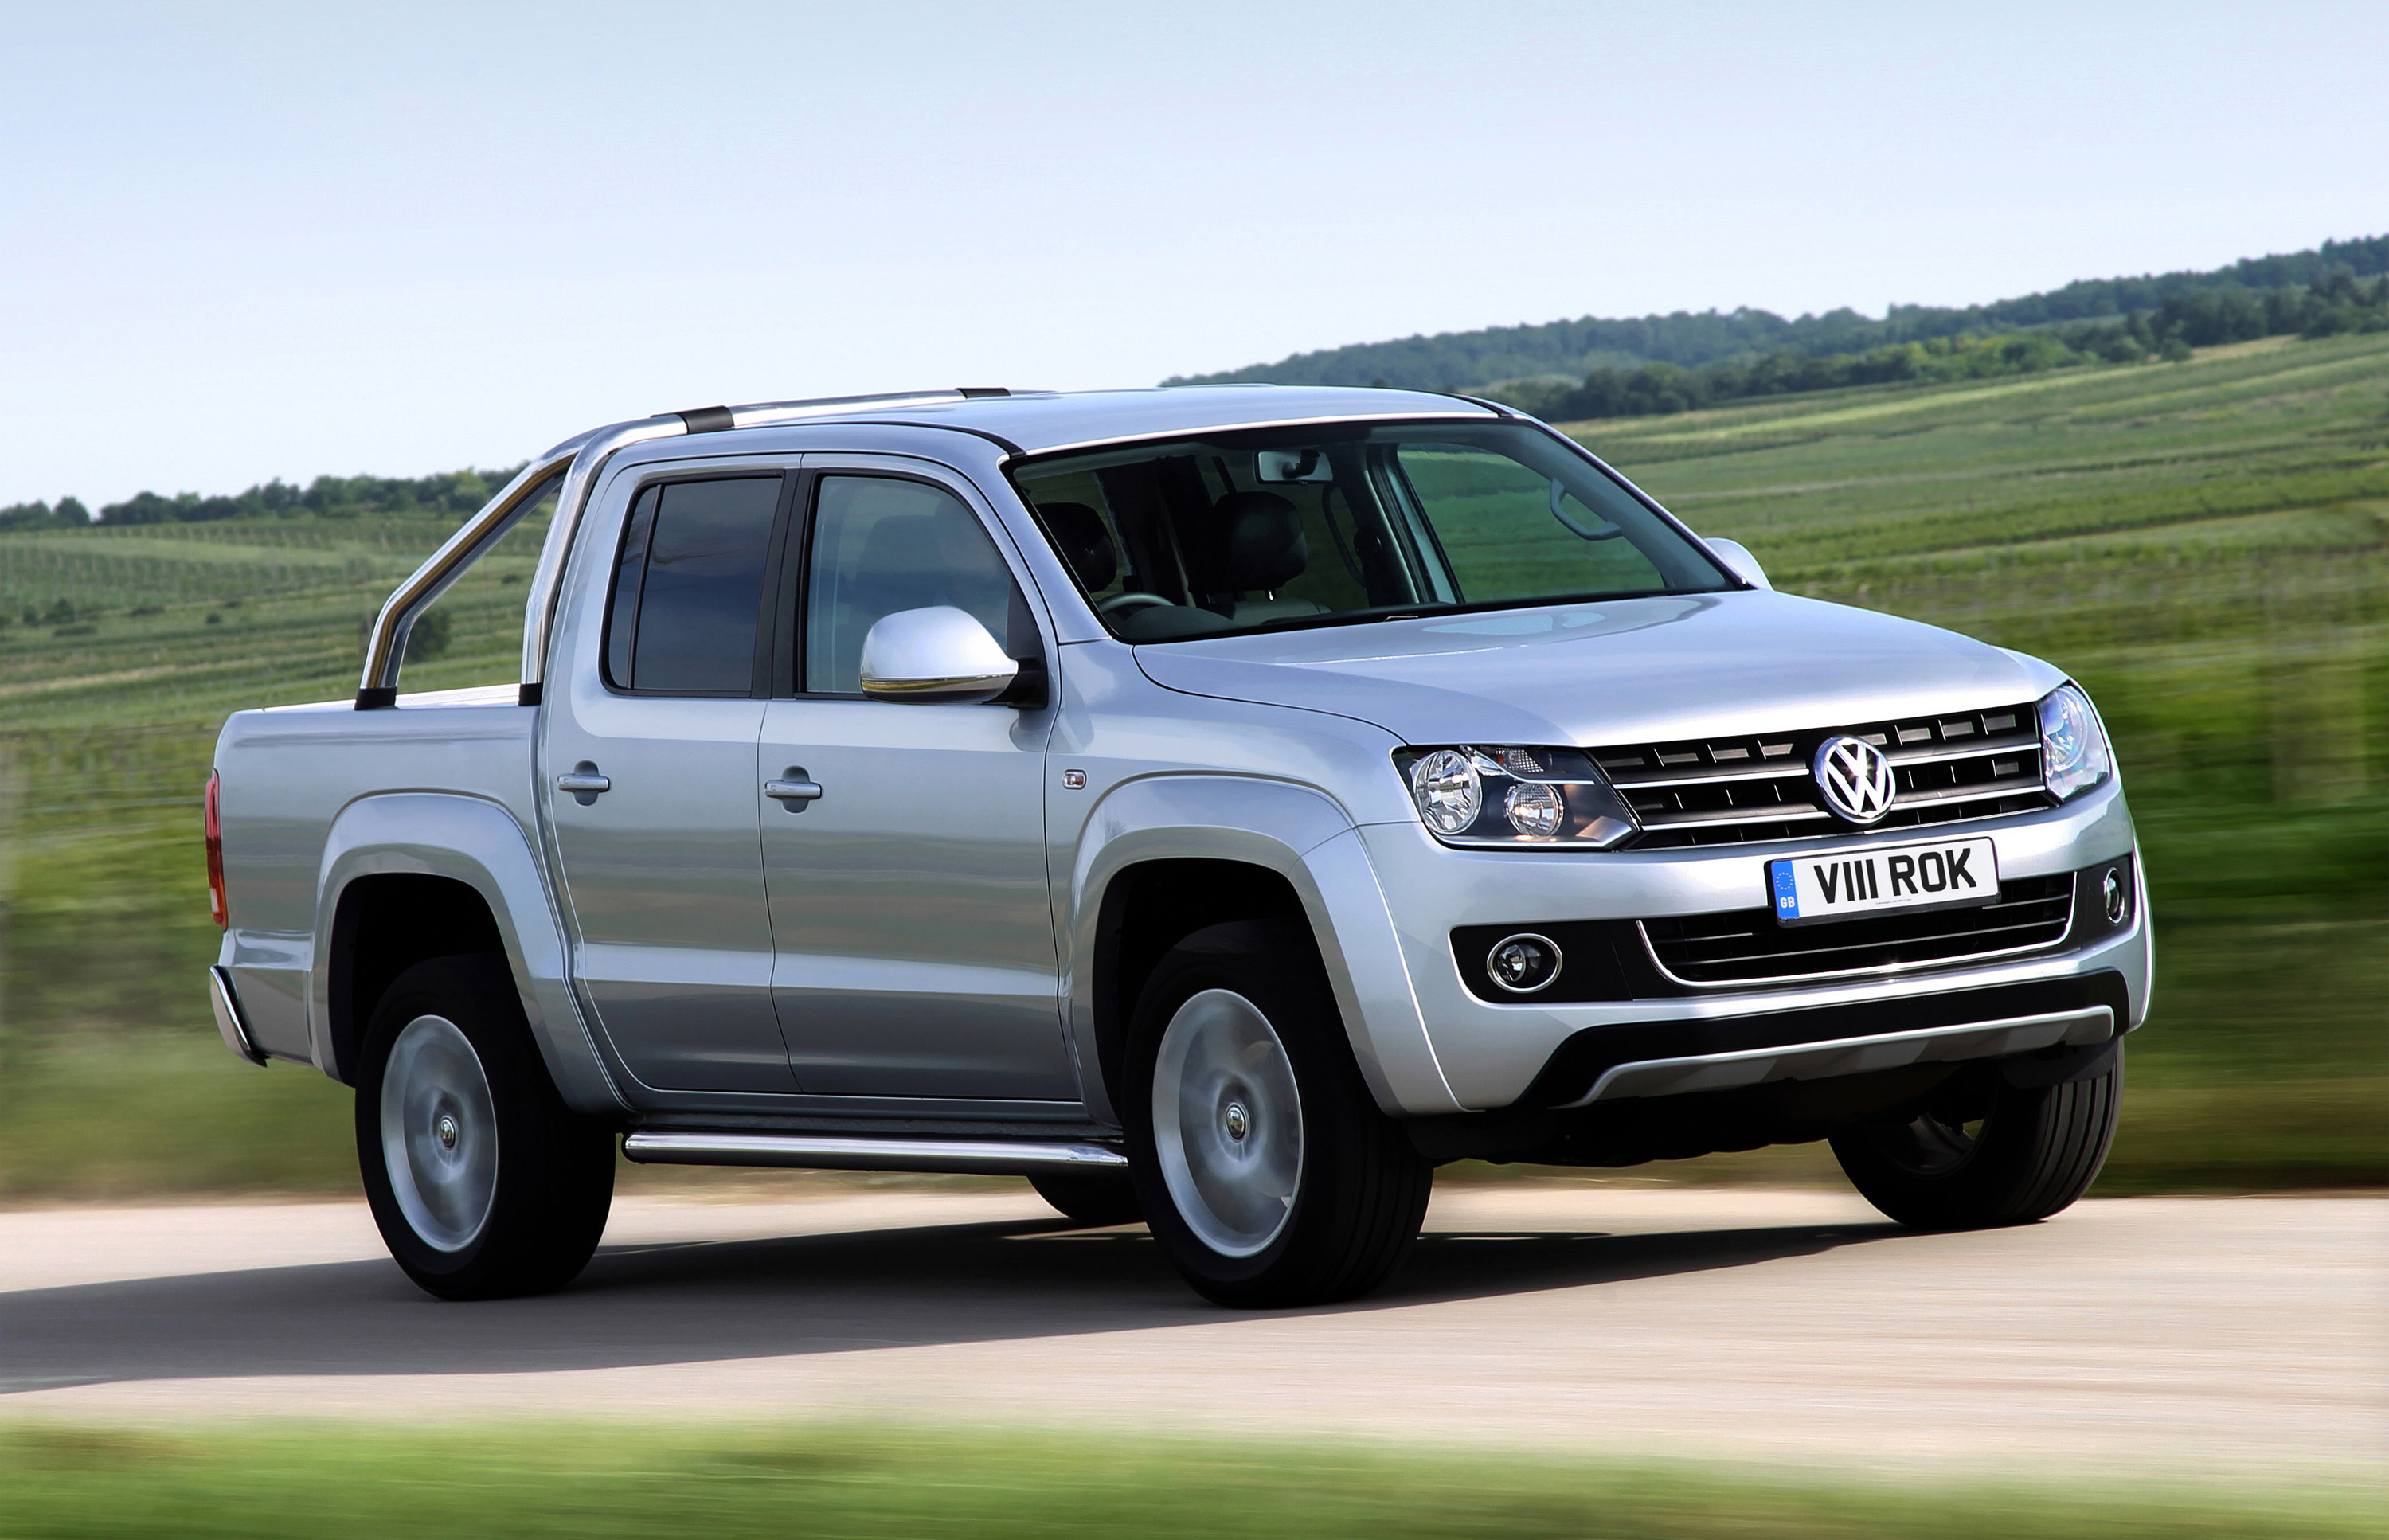 2012 Volkswagen Amarok Uk 2 0 Bitdi Price 163 19 795